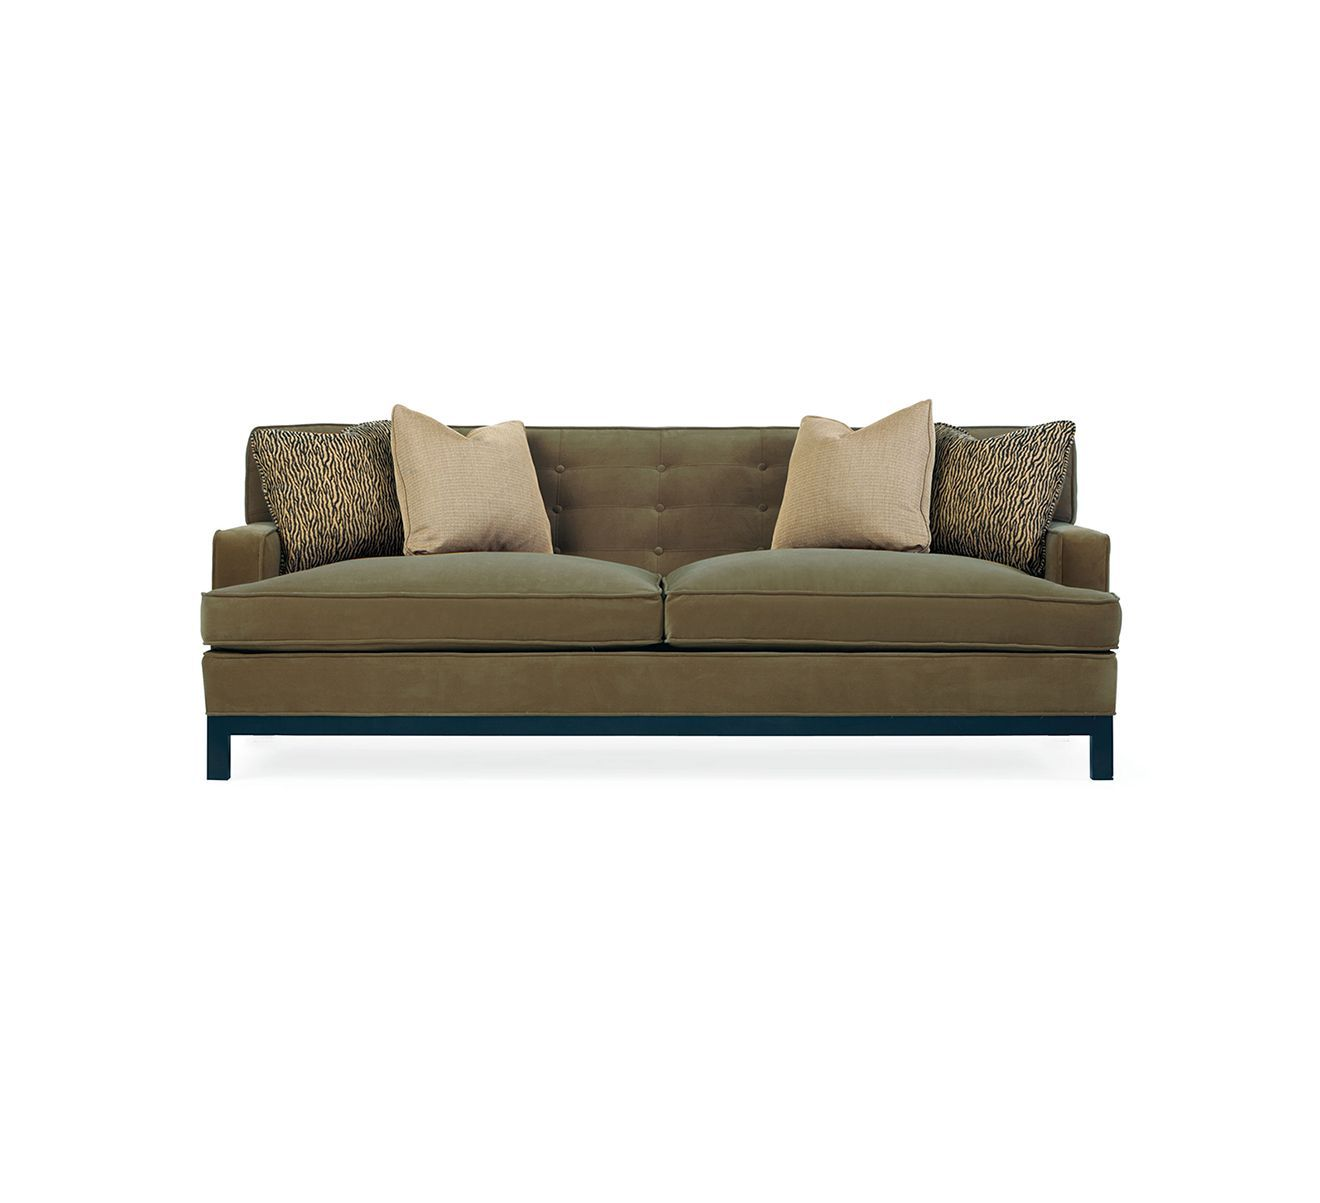 Bernhardt piper sofa set collier 39 s furniture expo for Bernhardt furniture